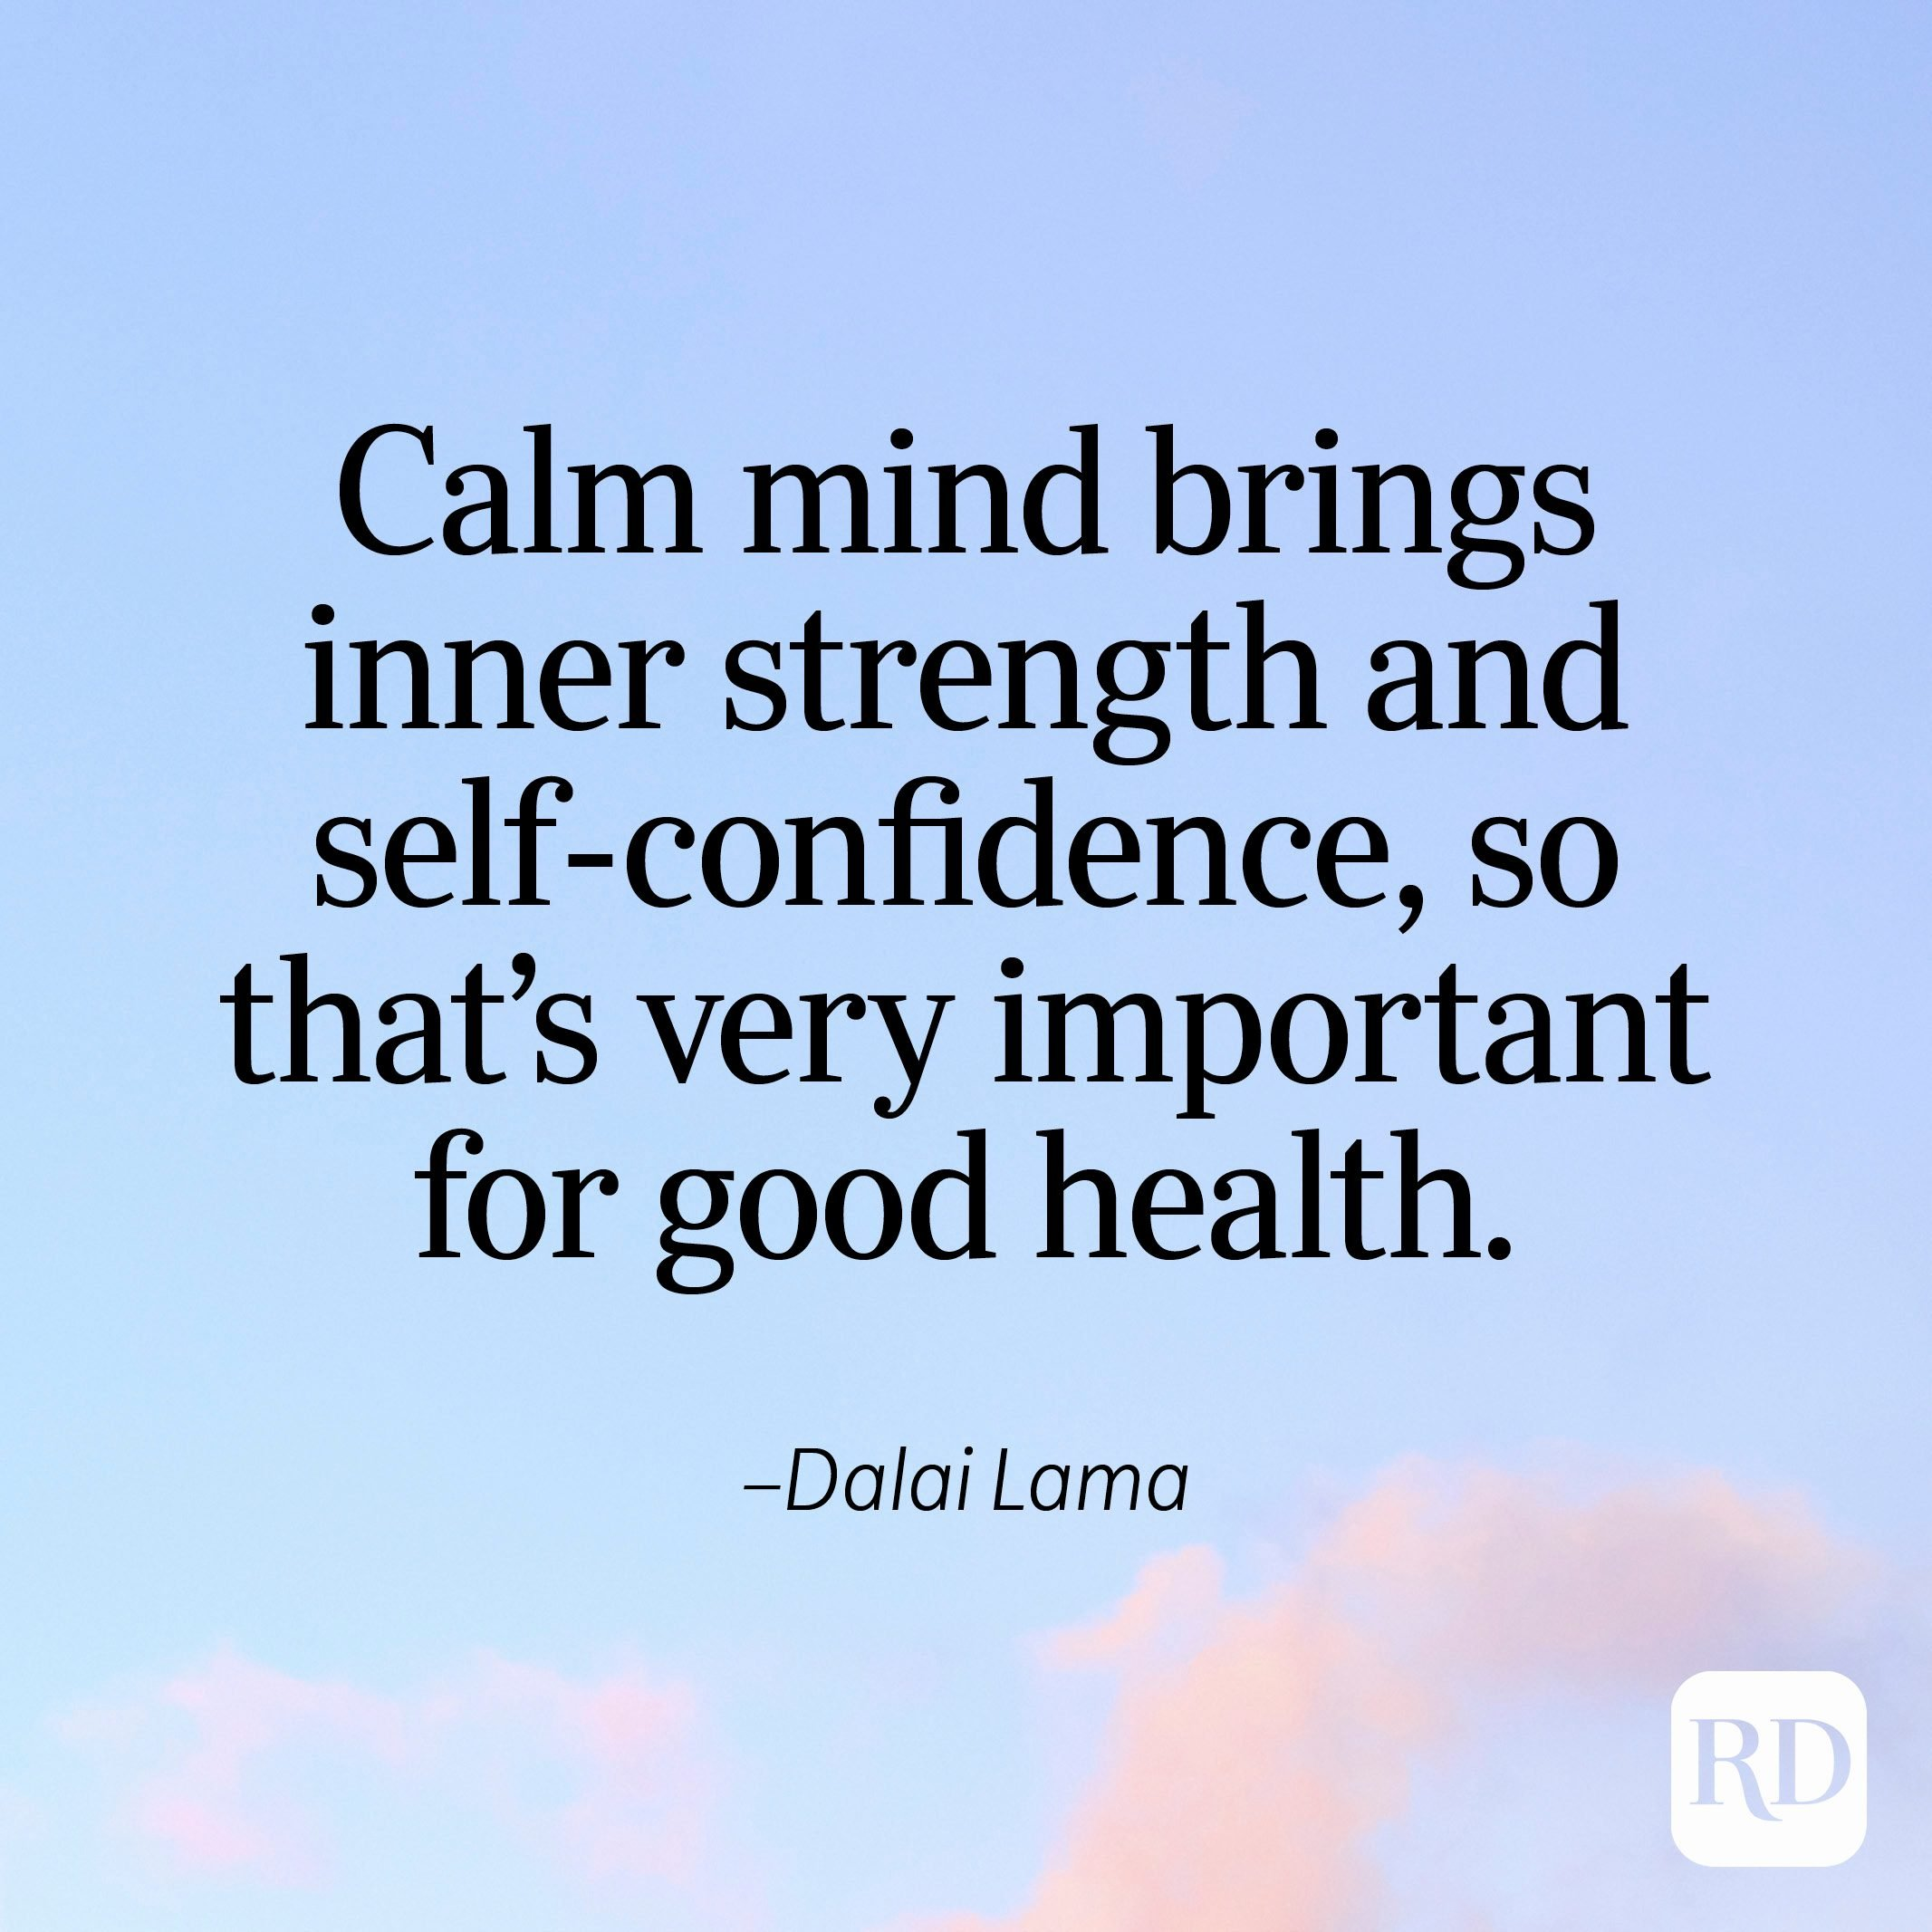 """""""Calm mind brings inner strength and self-confidence, so that's very important for good health."""" —Dalai Lama"""